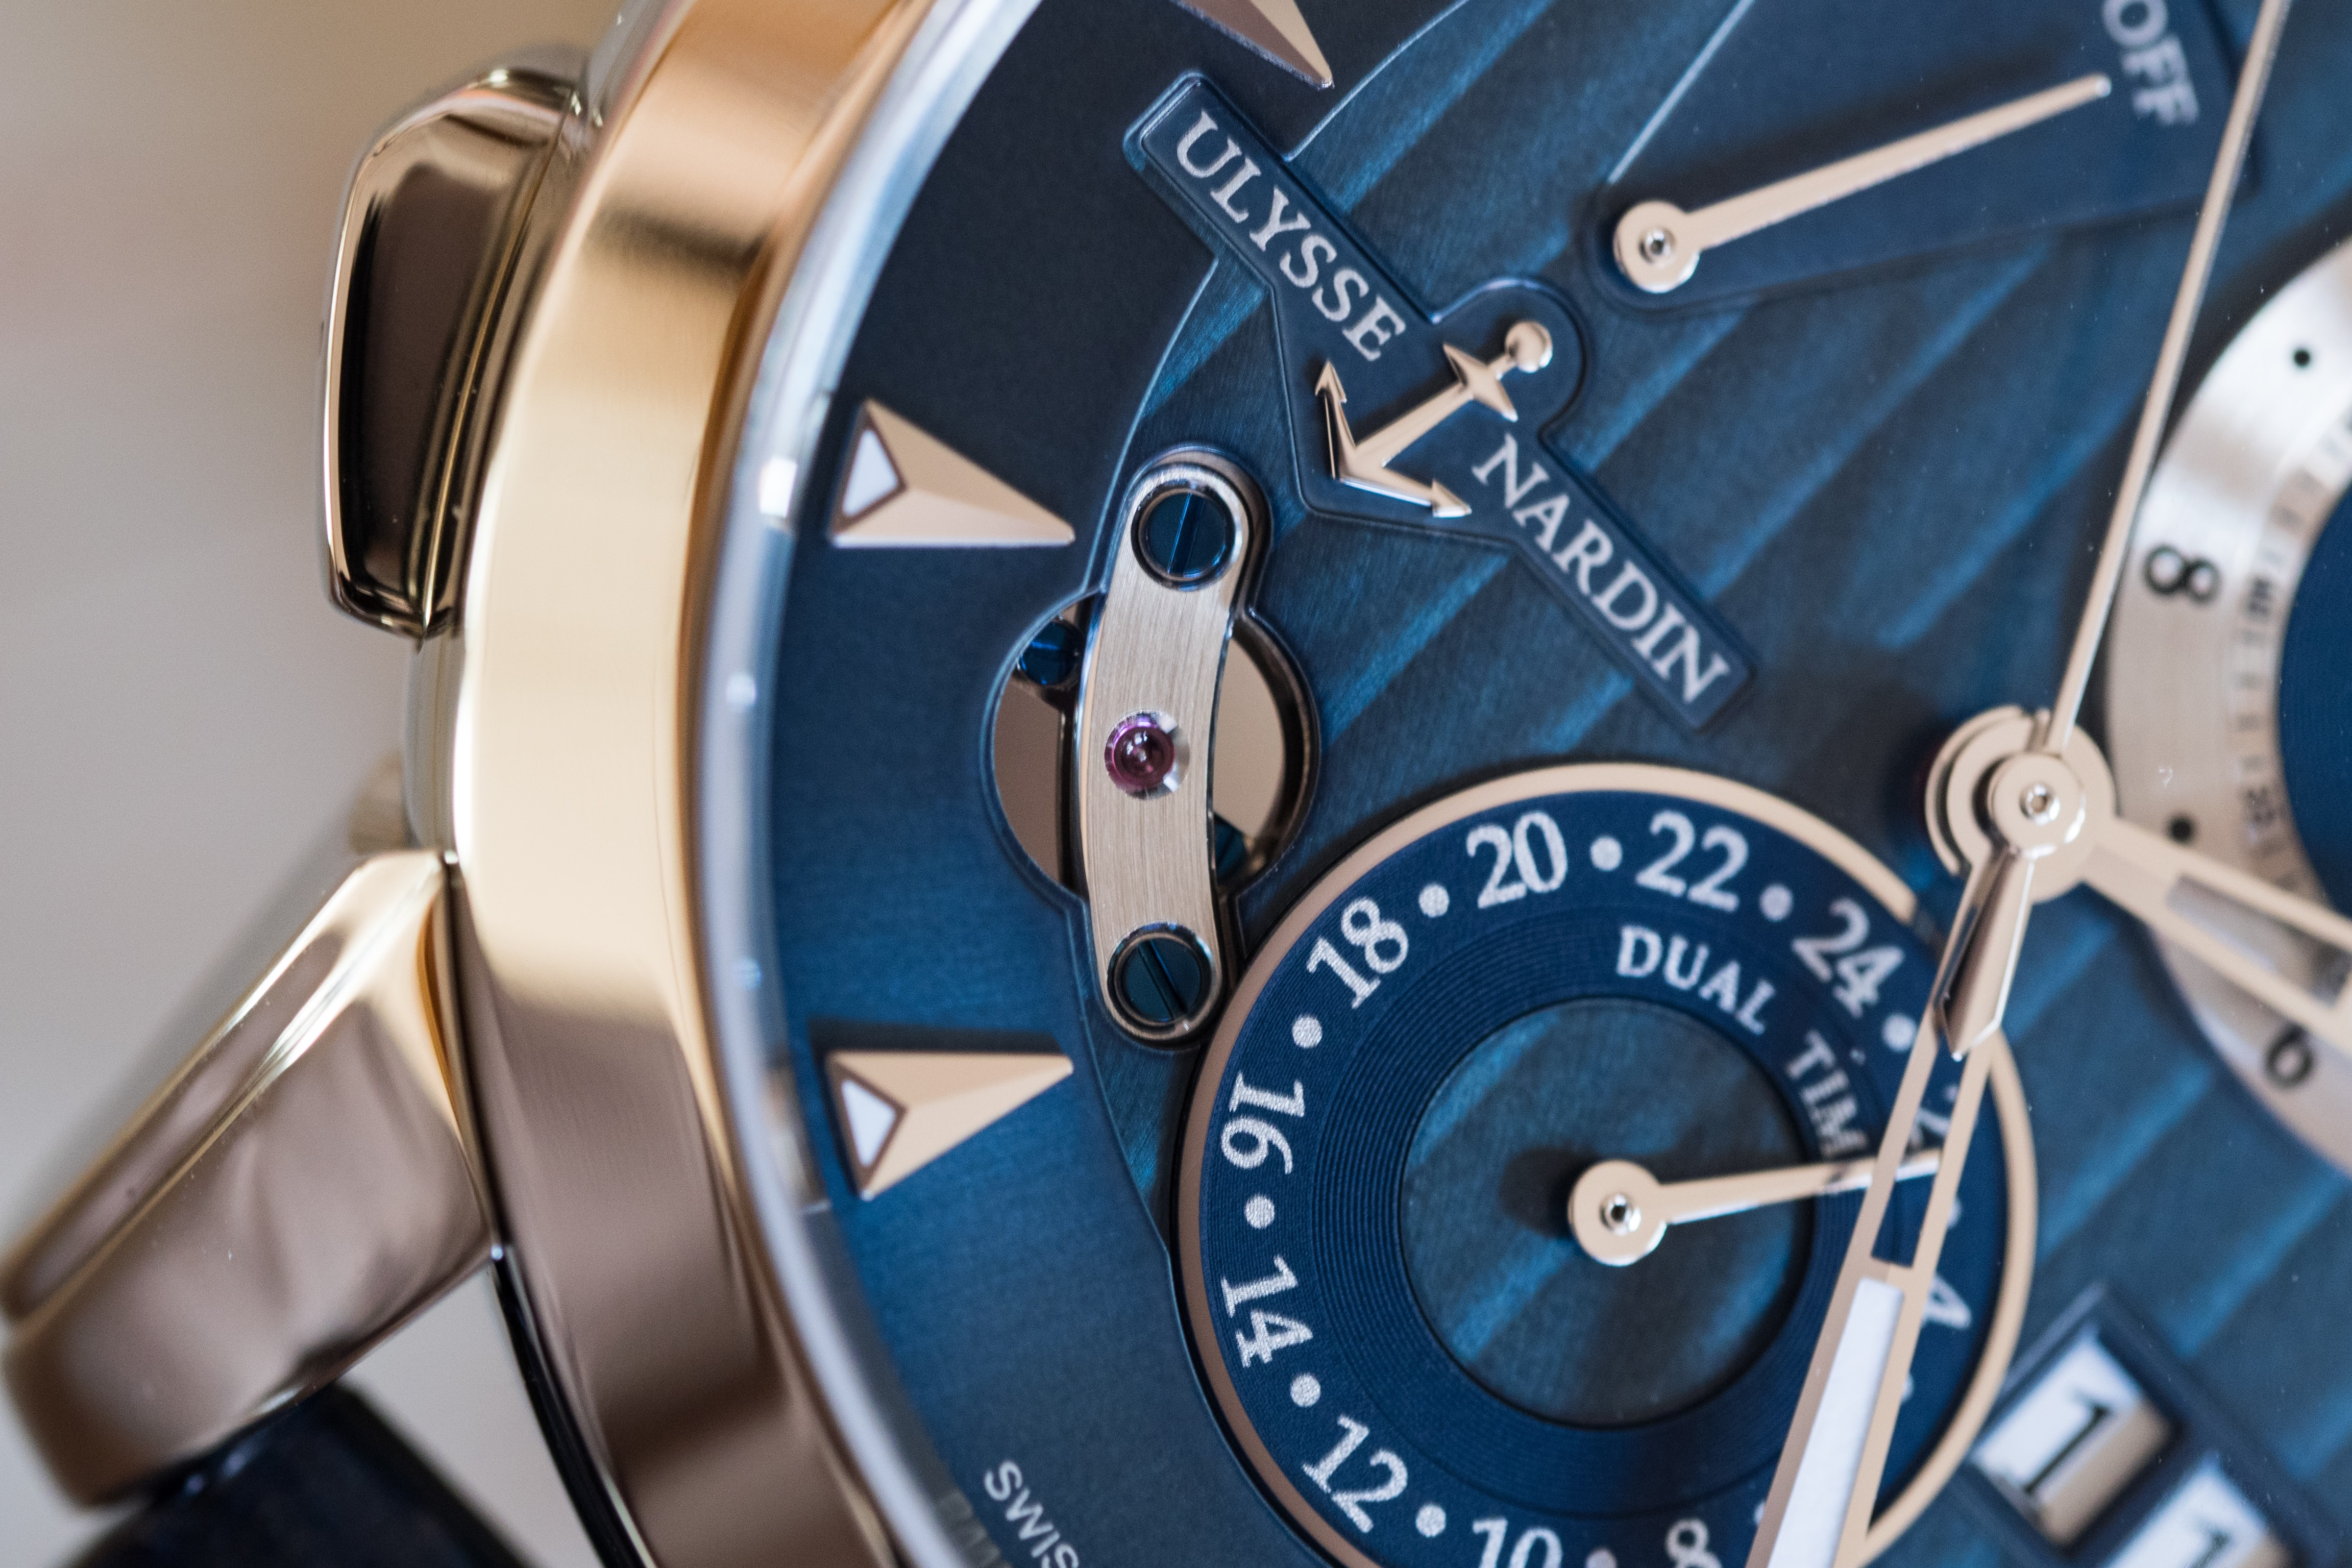 Ulysse Nardin Classic Sonata dial closeup inertial governor Hands-On: The Ulysse Nardin Classic Sonata, A Self-Winding Alarm Watch With A Cathedral Gong (And More) Hands-On: The Ulysse Nardin Classic Sonata, A Self-Winding Alarm Watch With A Cathedral Gong (And More) PA190350